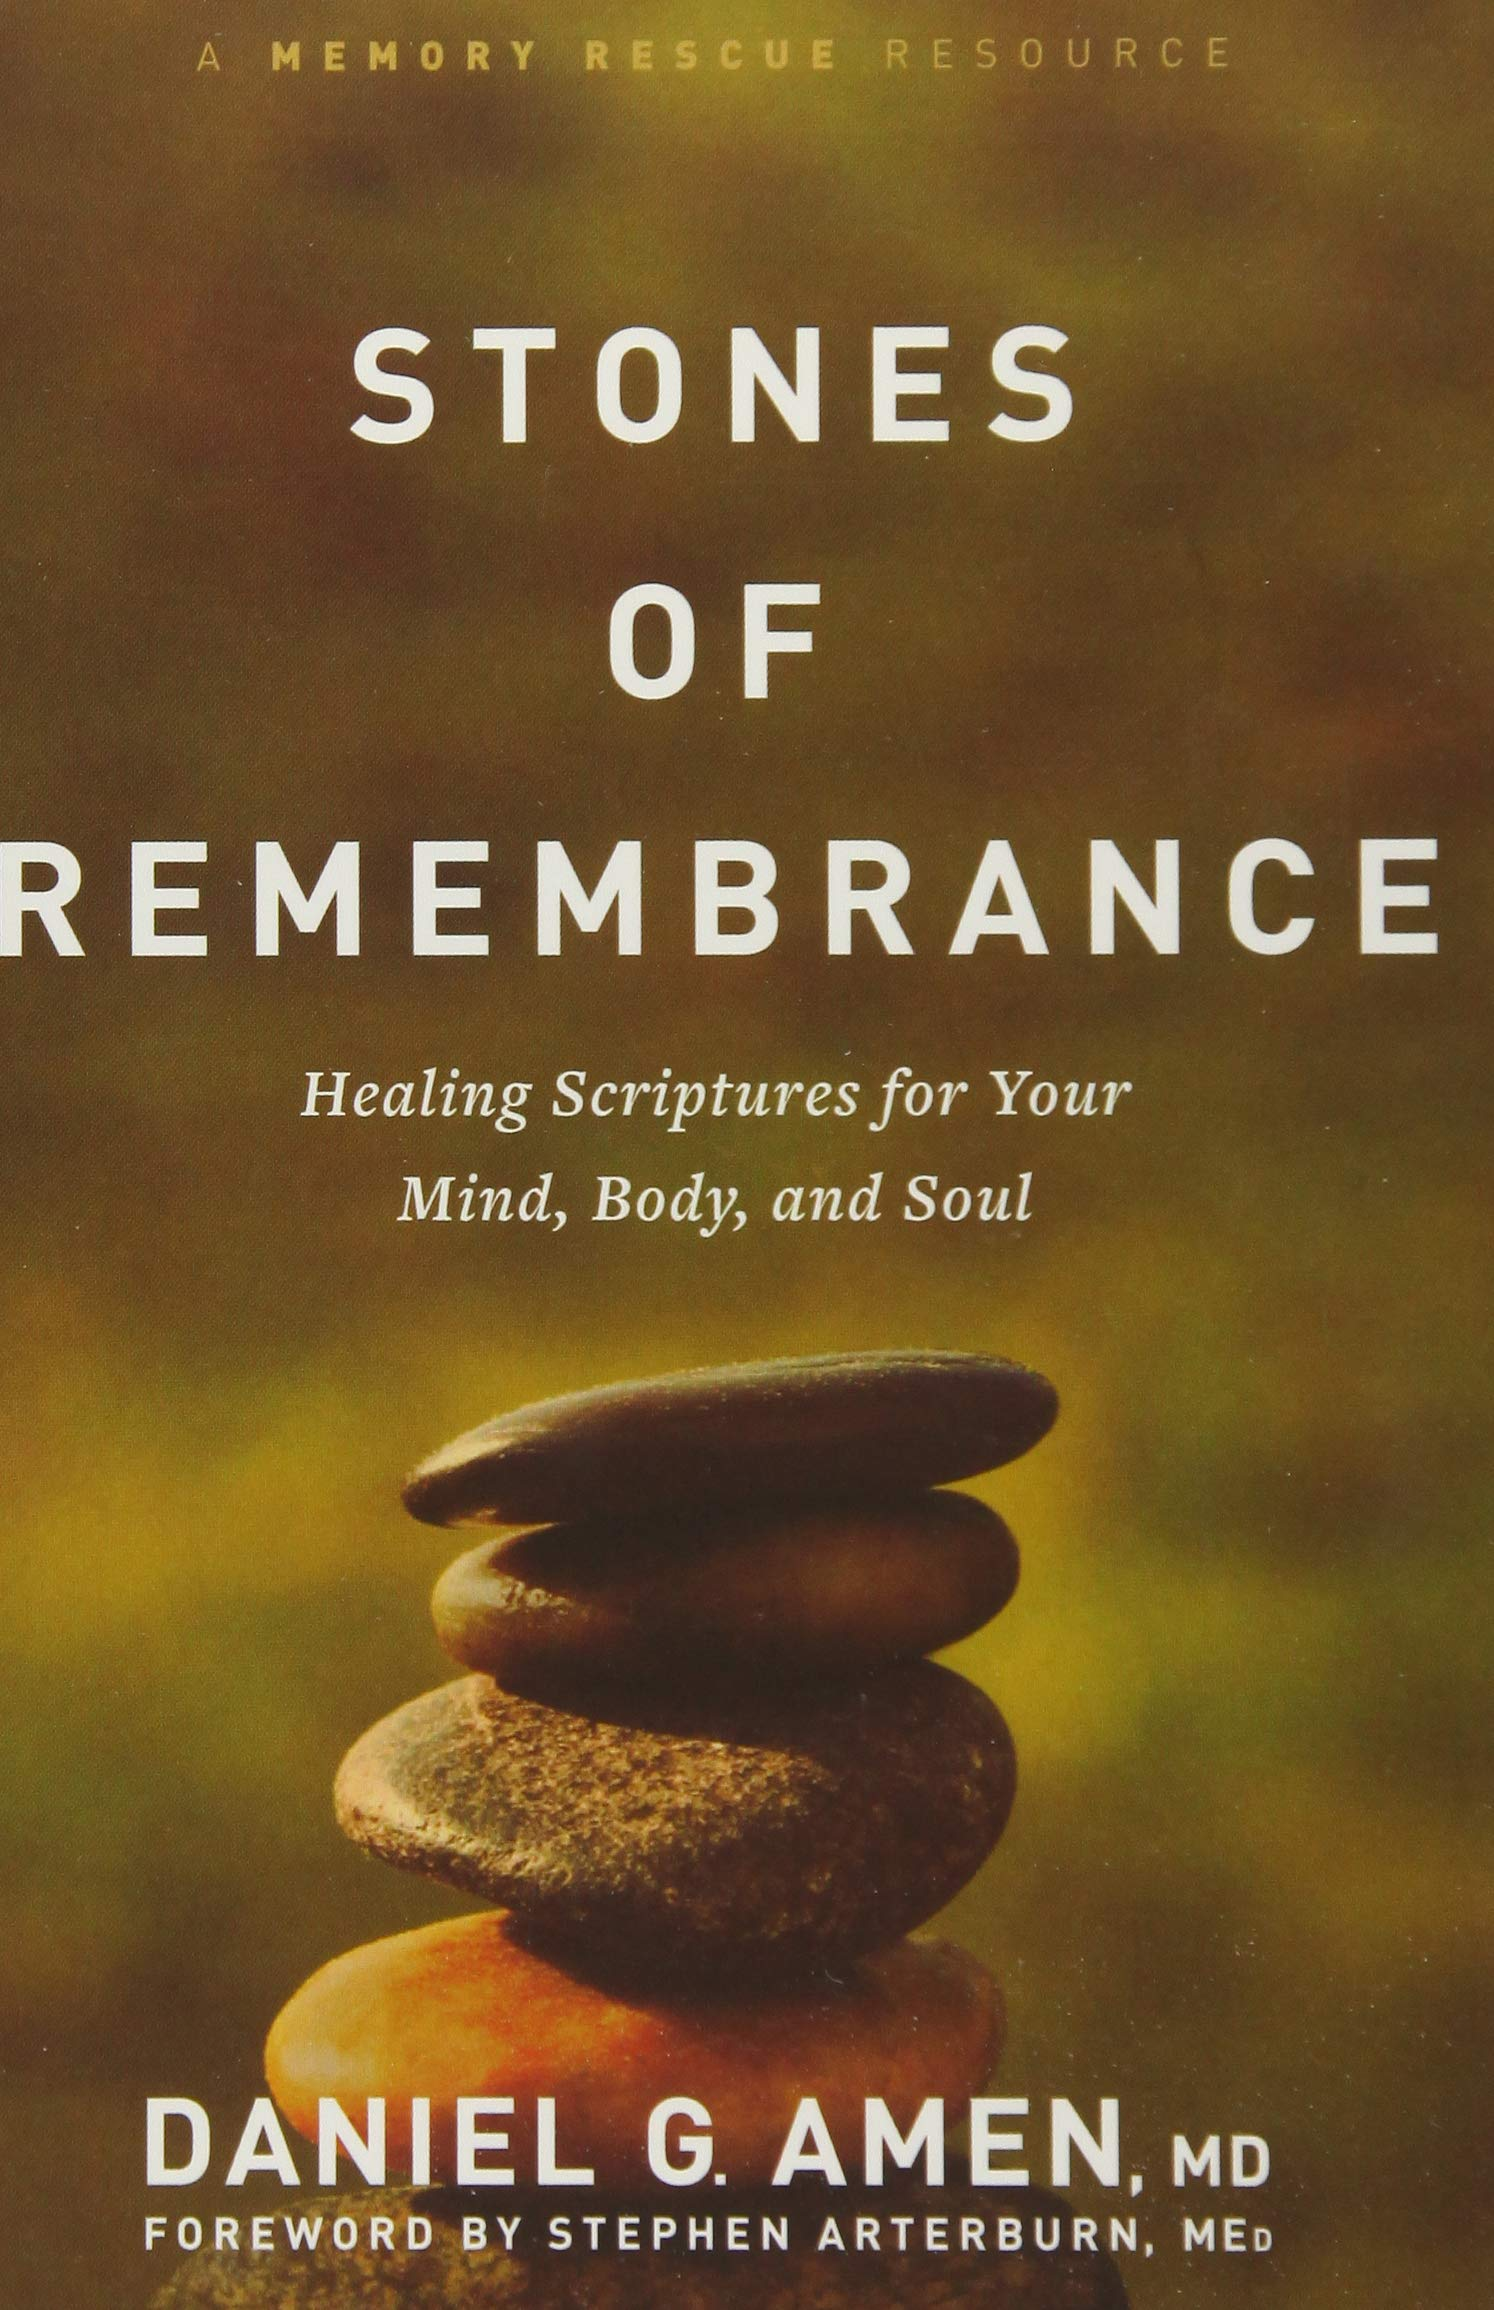 Image OfStones Of Remembrance: Healing Scriptures For Your Mind, Body, And Soul (Memory Rescue Resource)